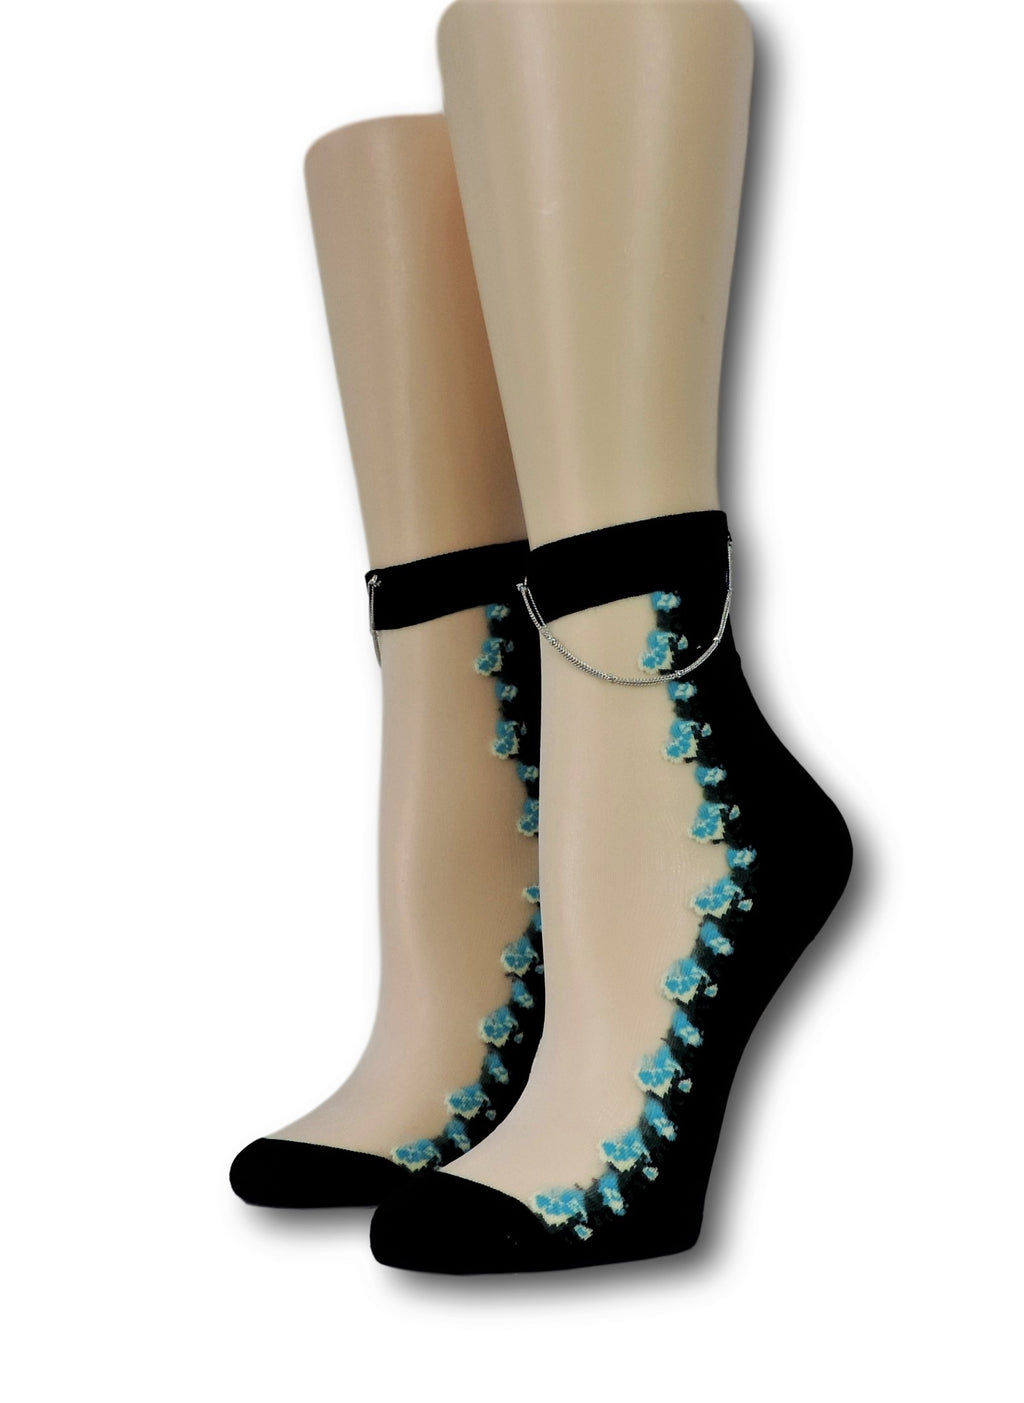 Cute Floral Hip Hop Socks with Chain